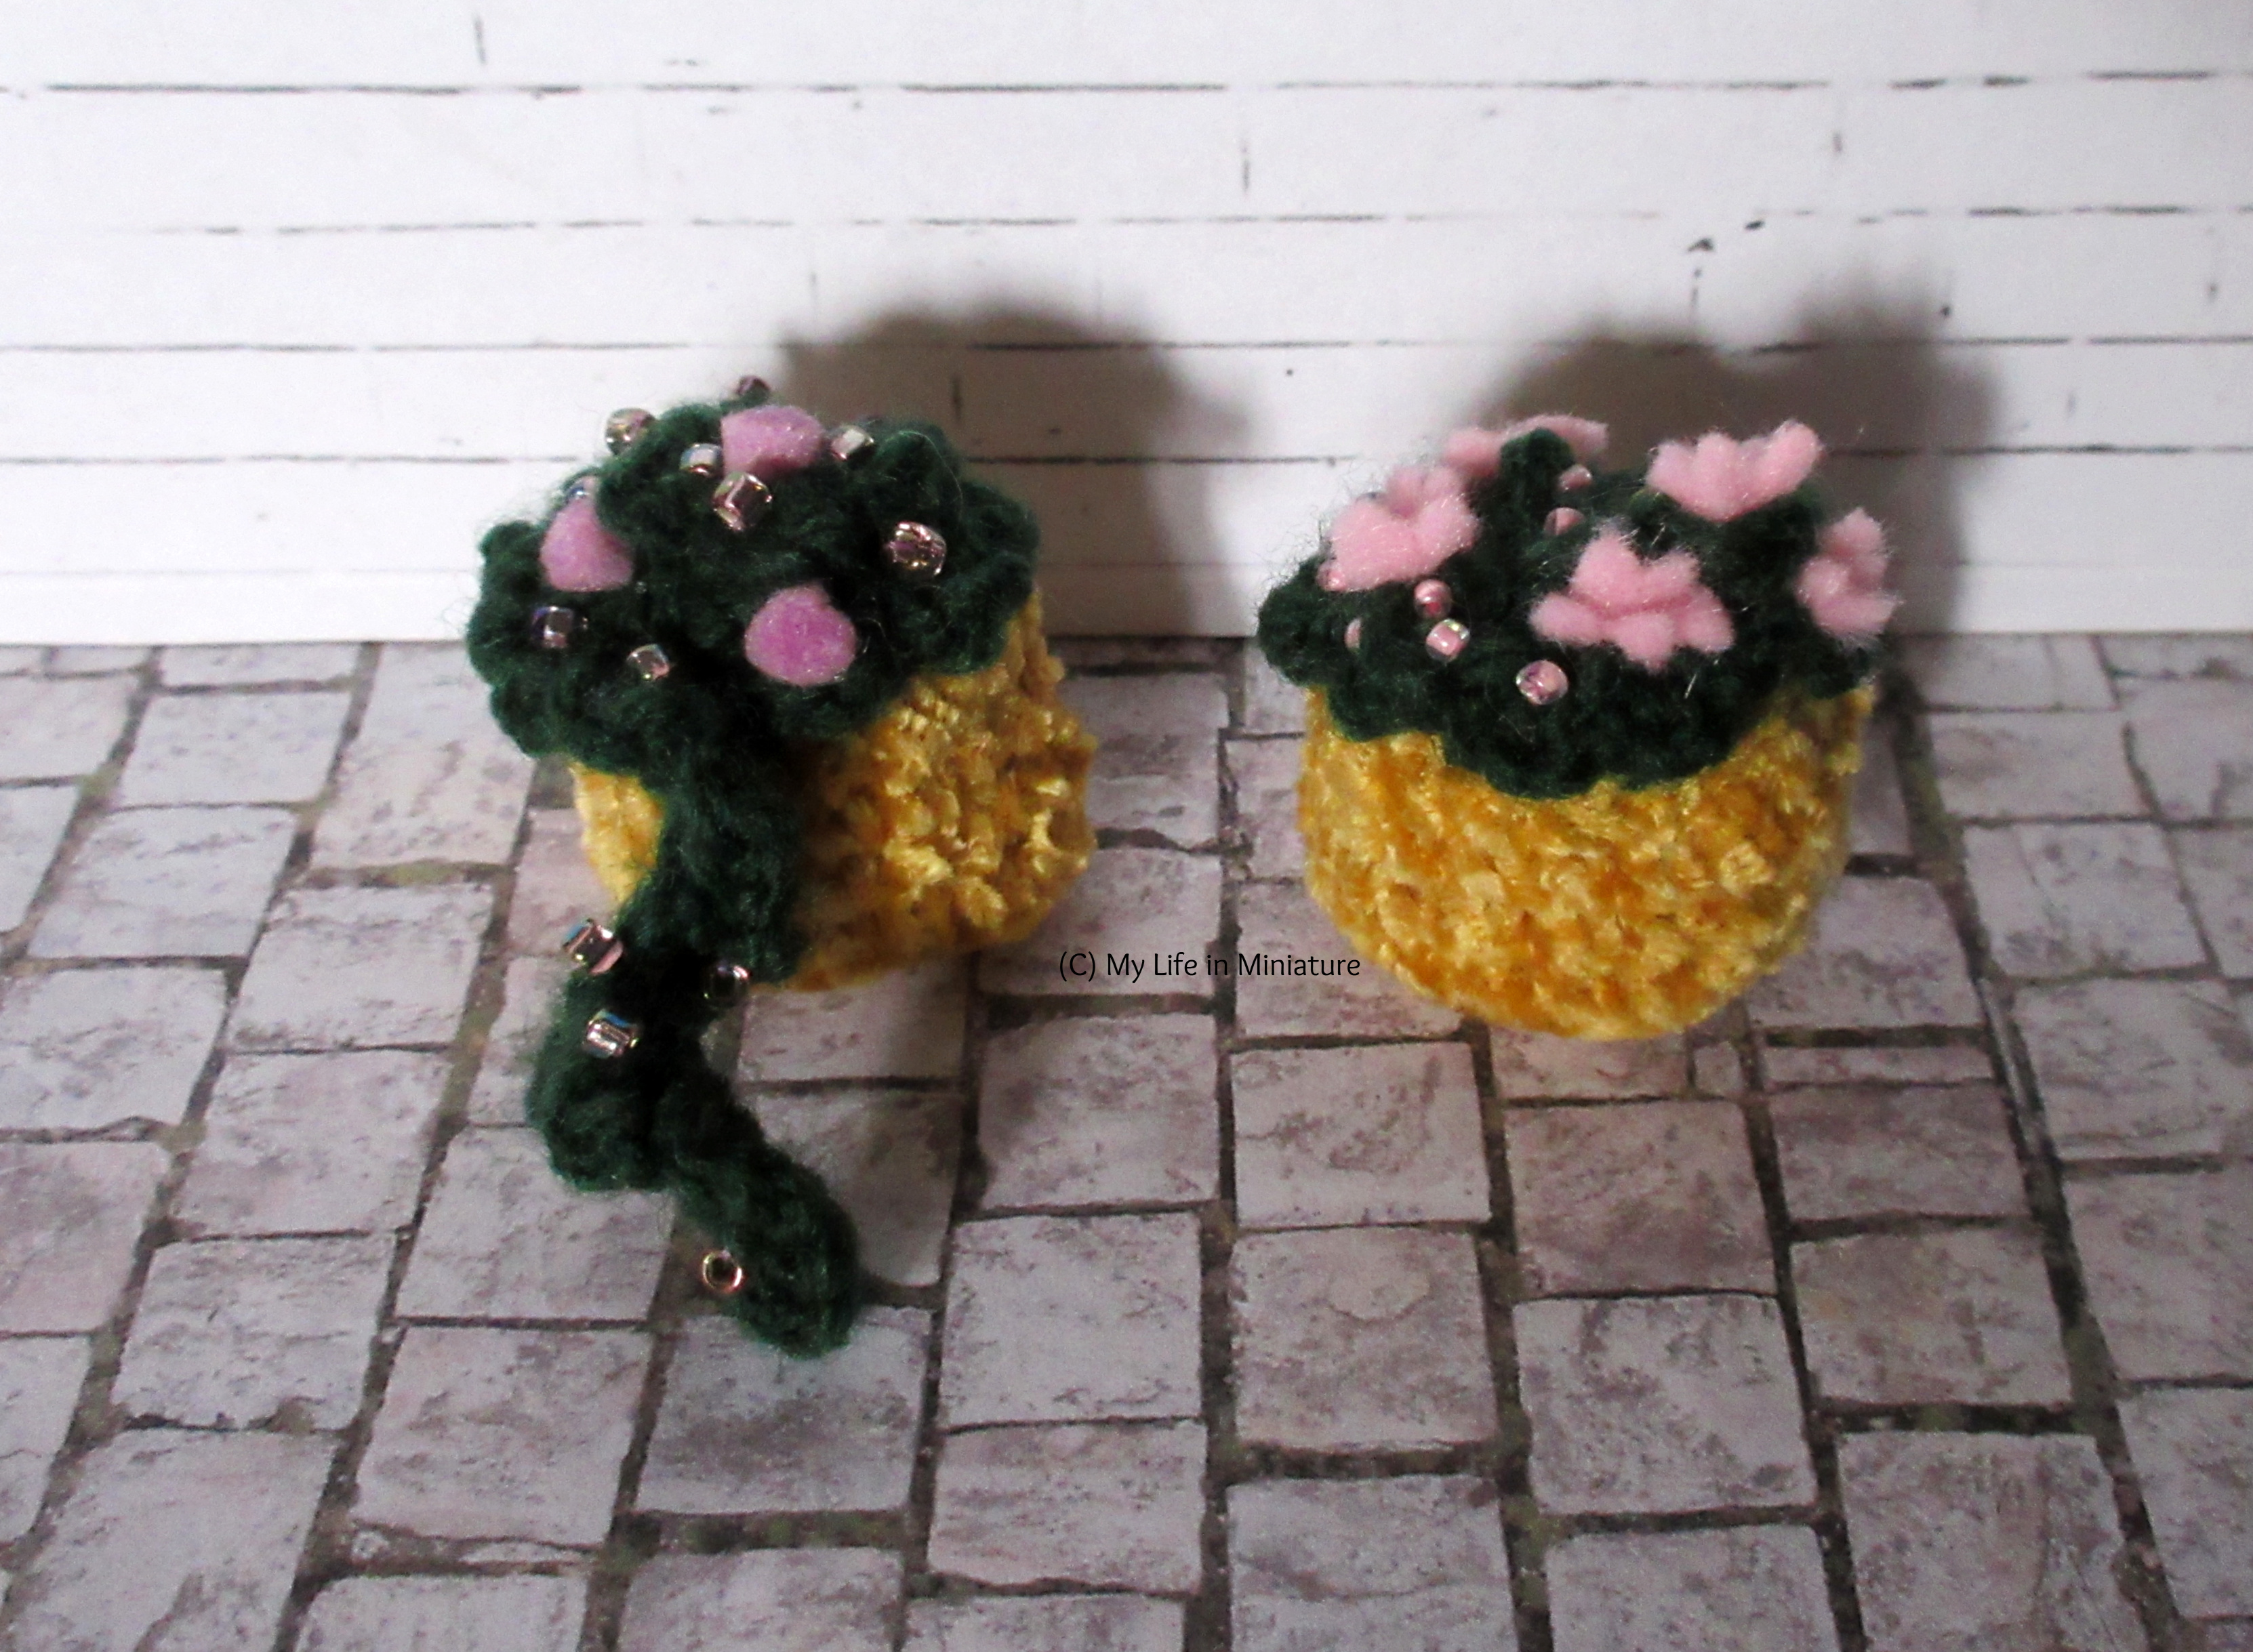 Two of the baskets are against a white brick background. One has purple flowers and beads in, with one stem (?) dangling over. The other has larger pink flowers and beads in. The pots are yellow.